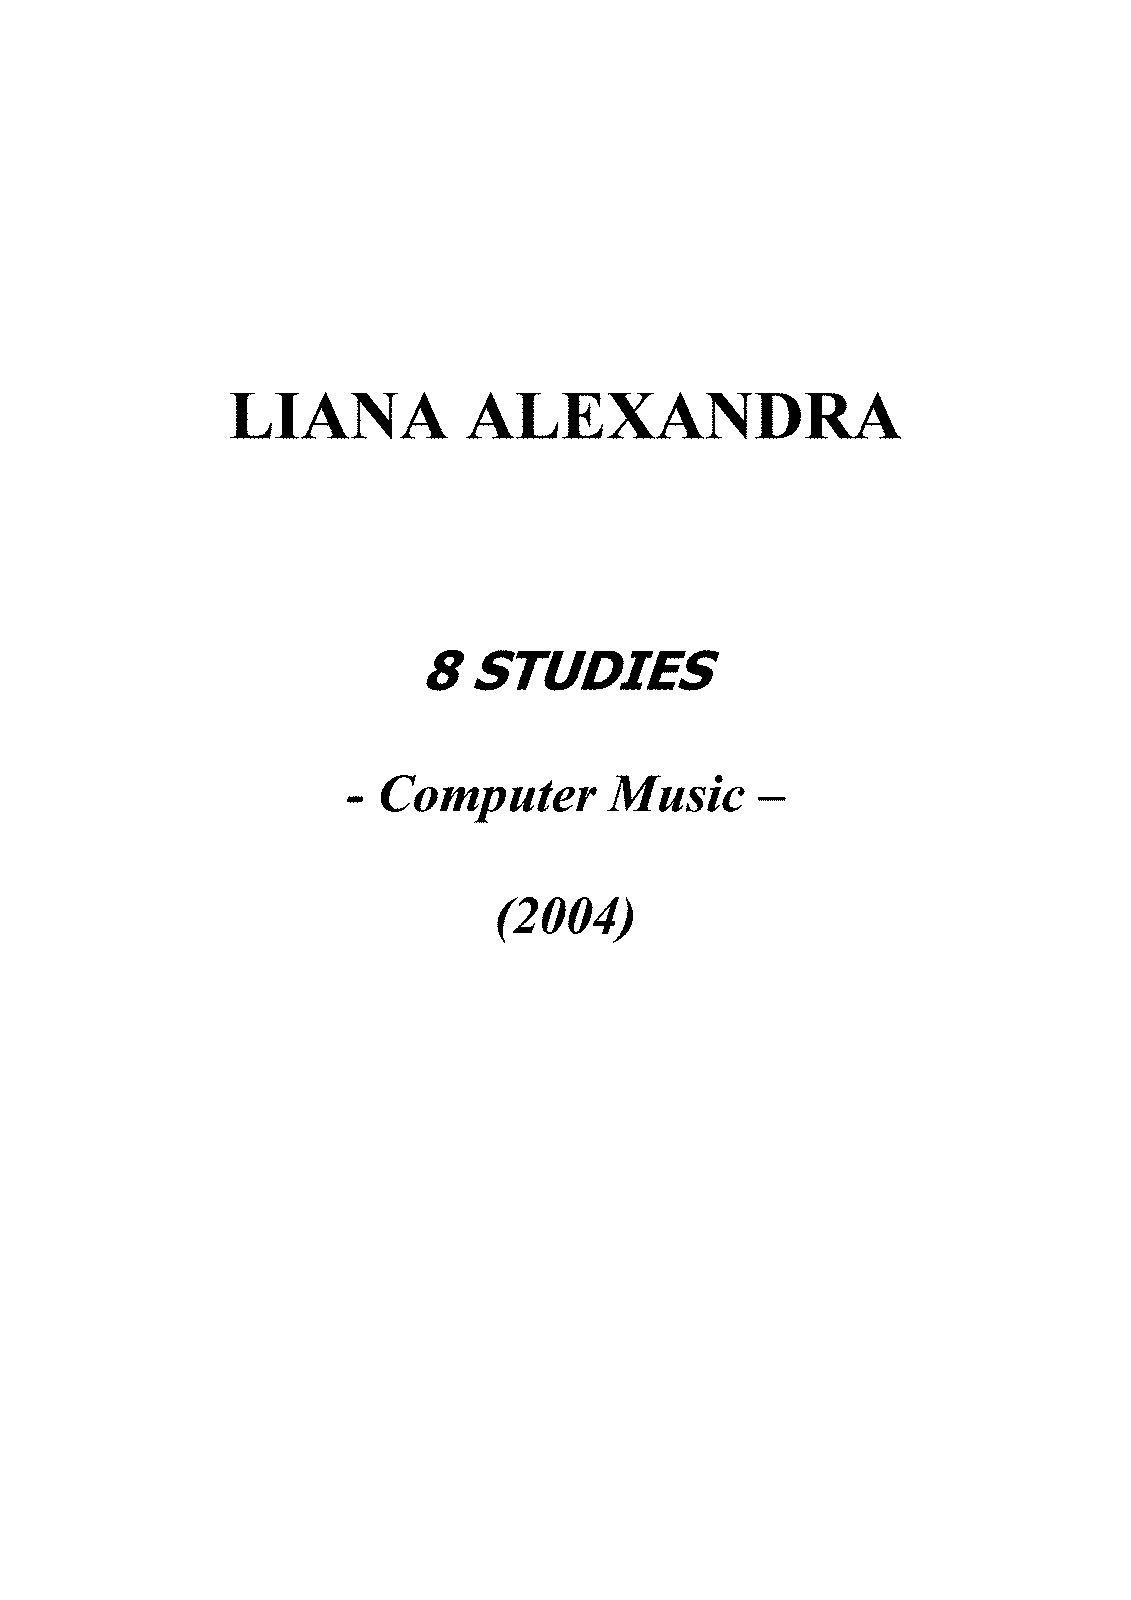 PMLP538546-LianaAlexandra 8Studies ComputerMusic.pdf